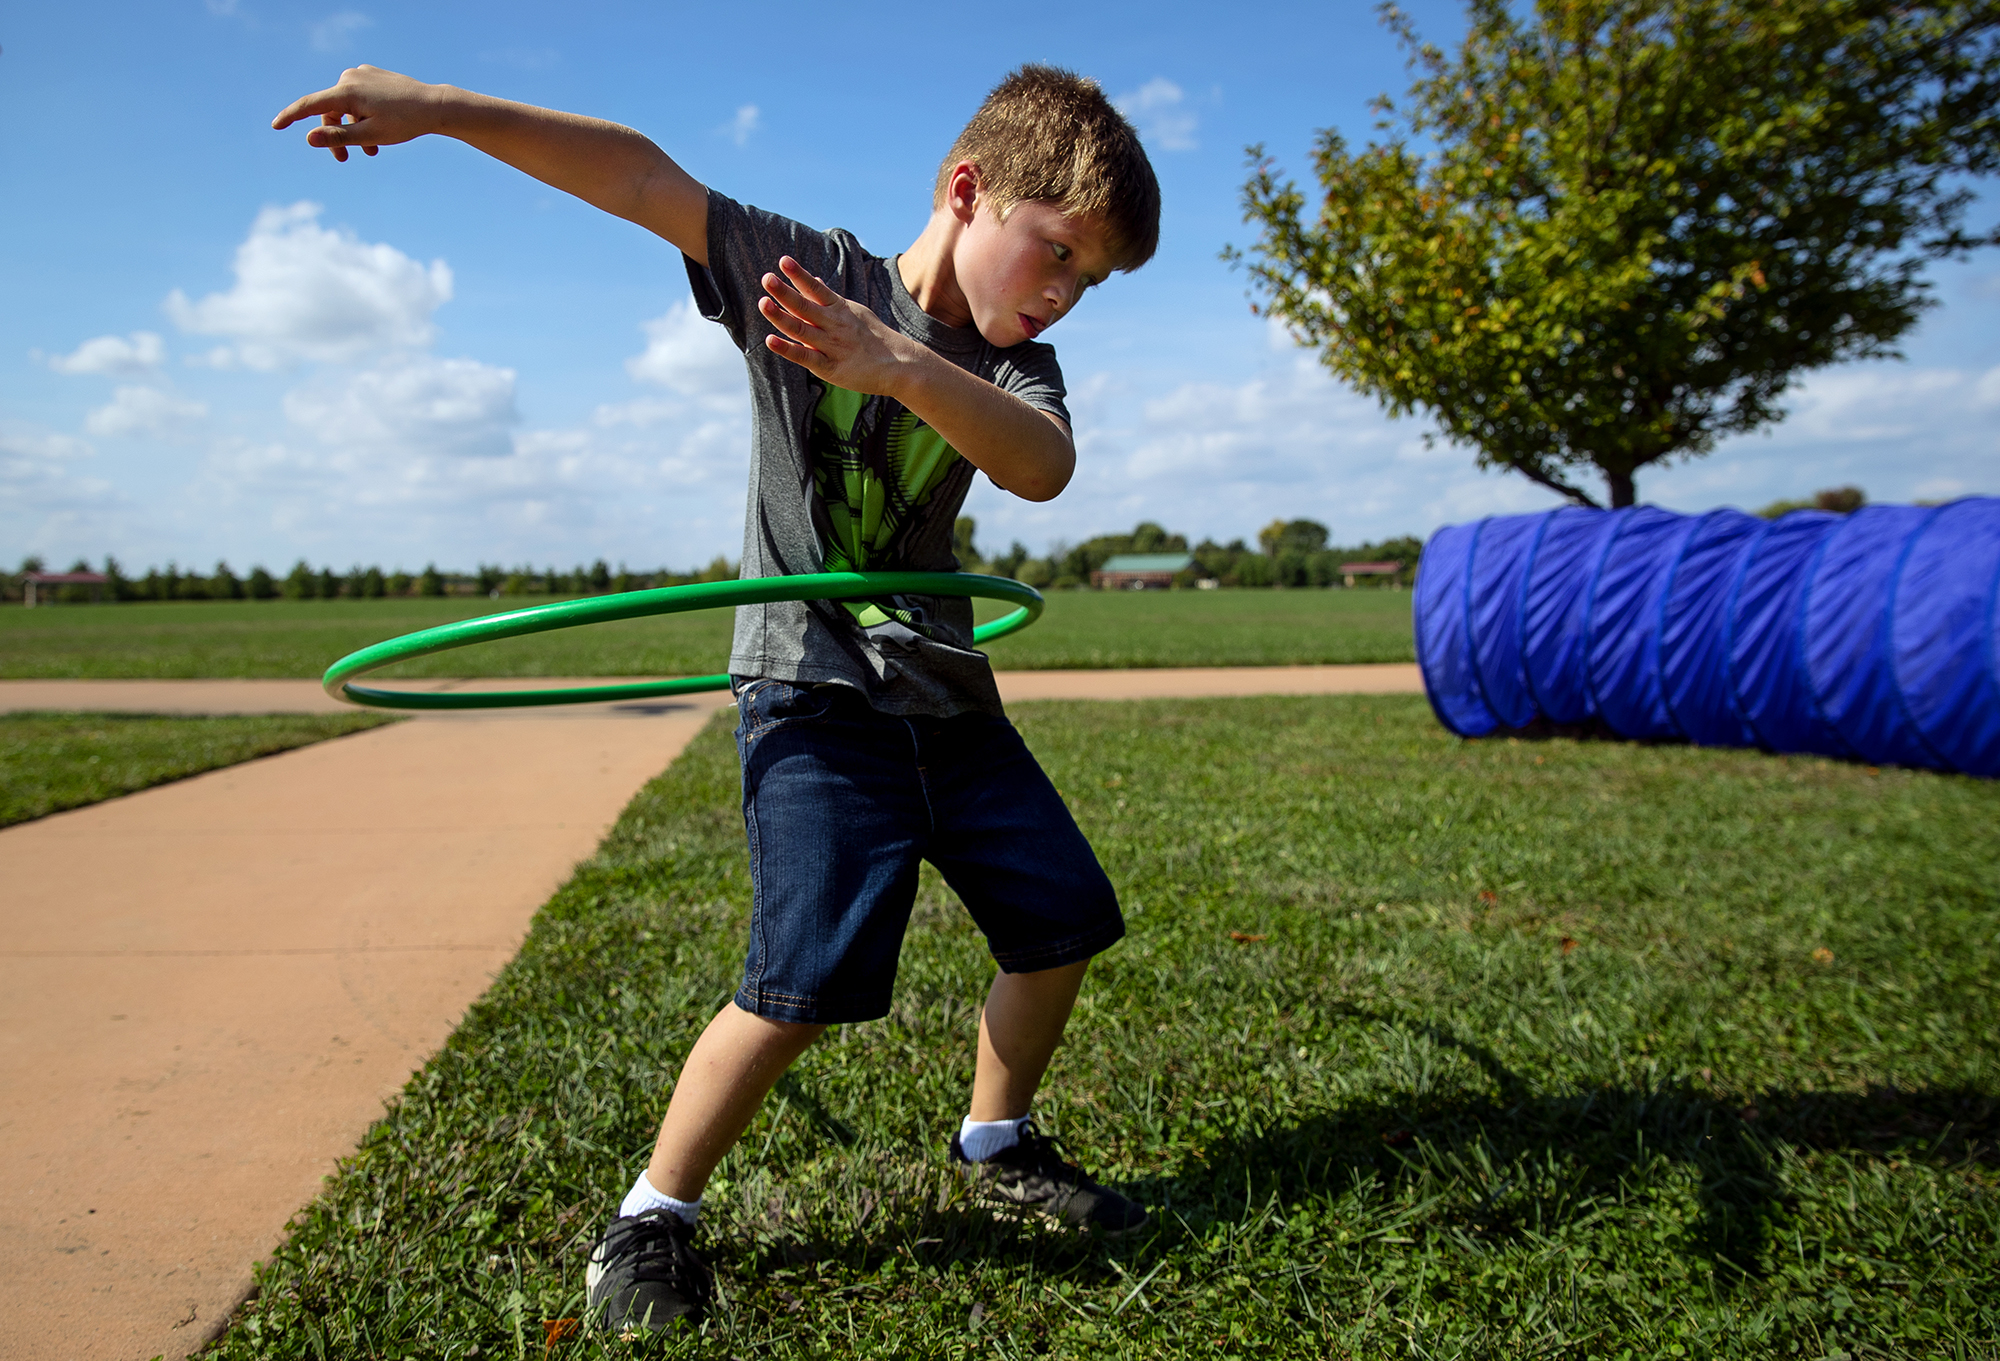 """Kamden Estes concentrates as he attempts to hula hoop during the """"Move 200"""" event at Southwind Park Sunday, Sept. 30, 2018. The genHkids station also featured a balance beam, a crawling tunnel and jump rope. The Illinois Bicentennial Coordinating Committee of Springfield has designated the month of October as Move 200 to interest the citizens of Springfield to exercise for 200 minutes in a month. [Ted Schurter/The State Journal-Register]"""